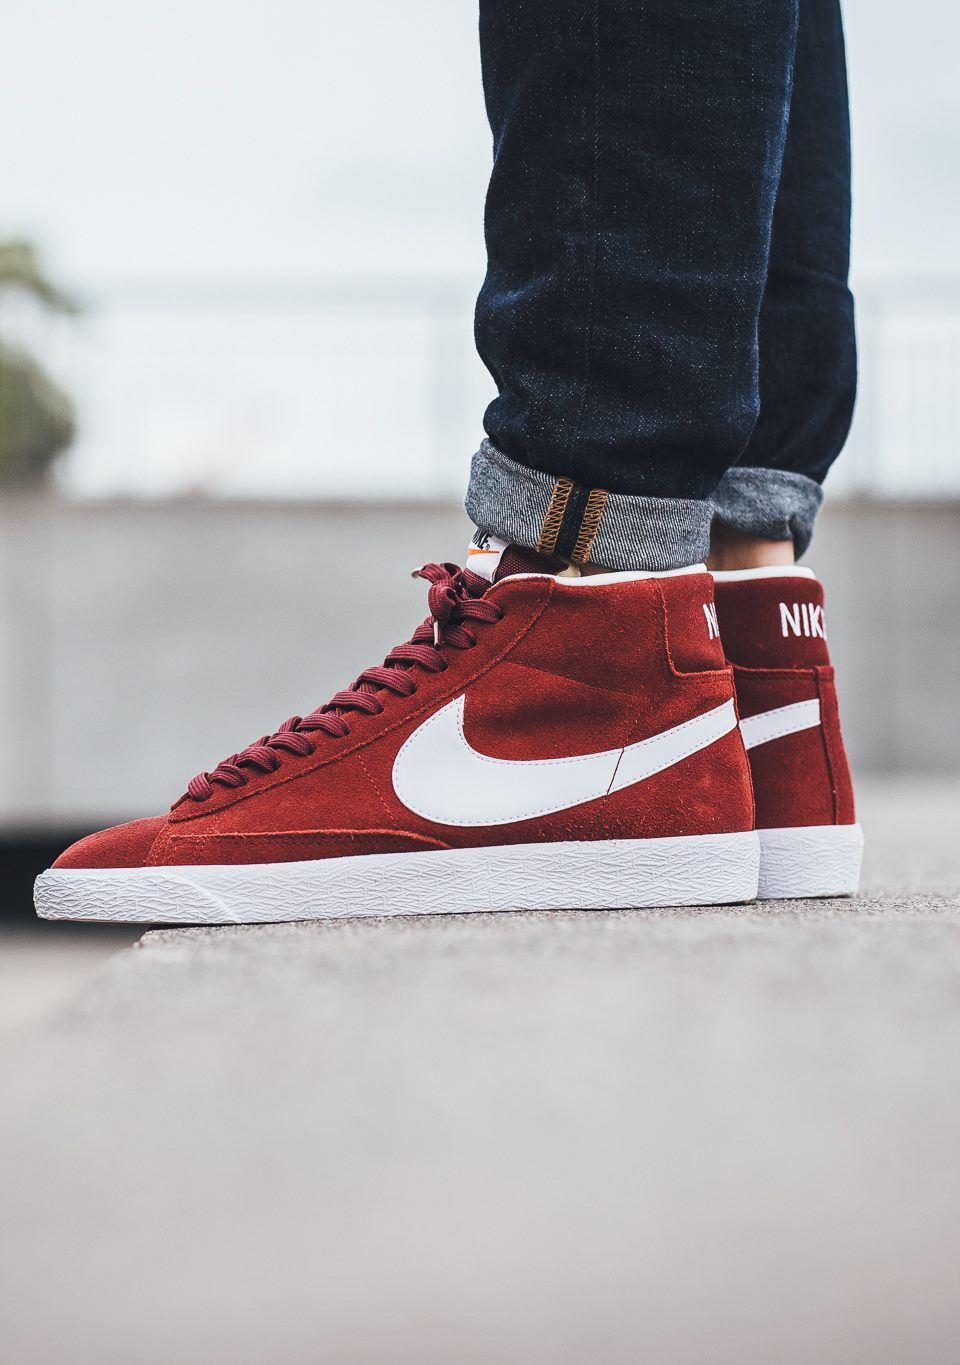 low priced 16a0e bfff2 Nike Blazer Mid Premium Team Red sneakernews Sneakers StreetStyle Kicks